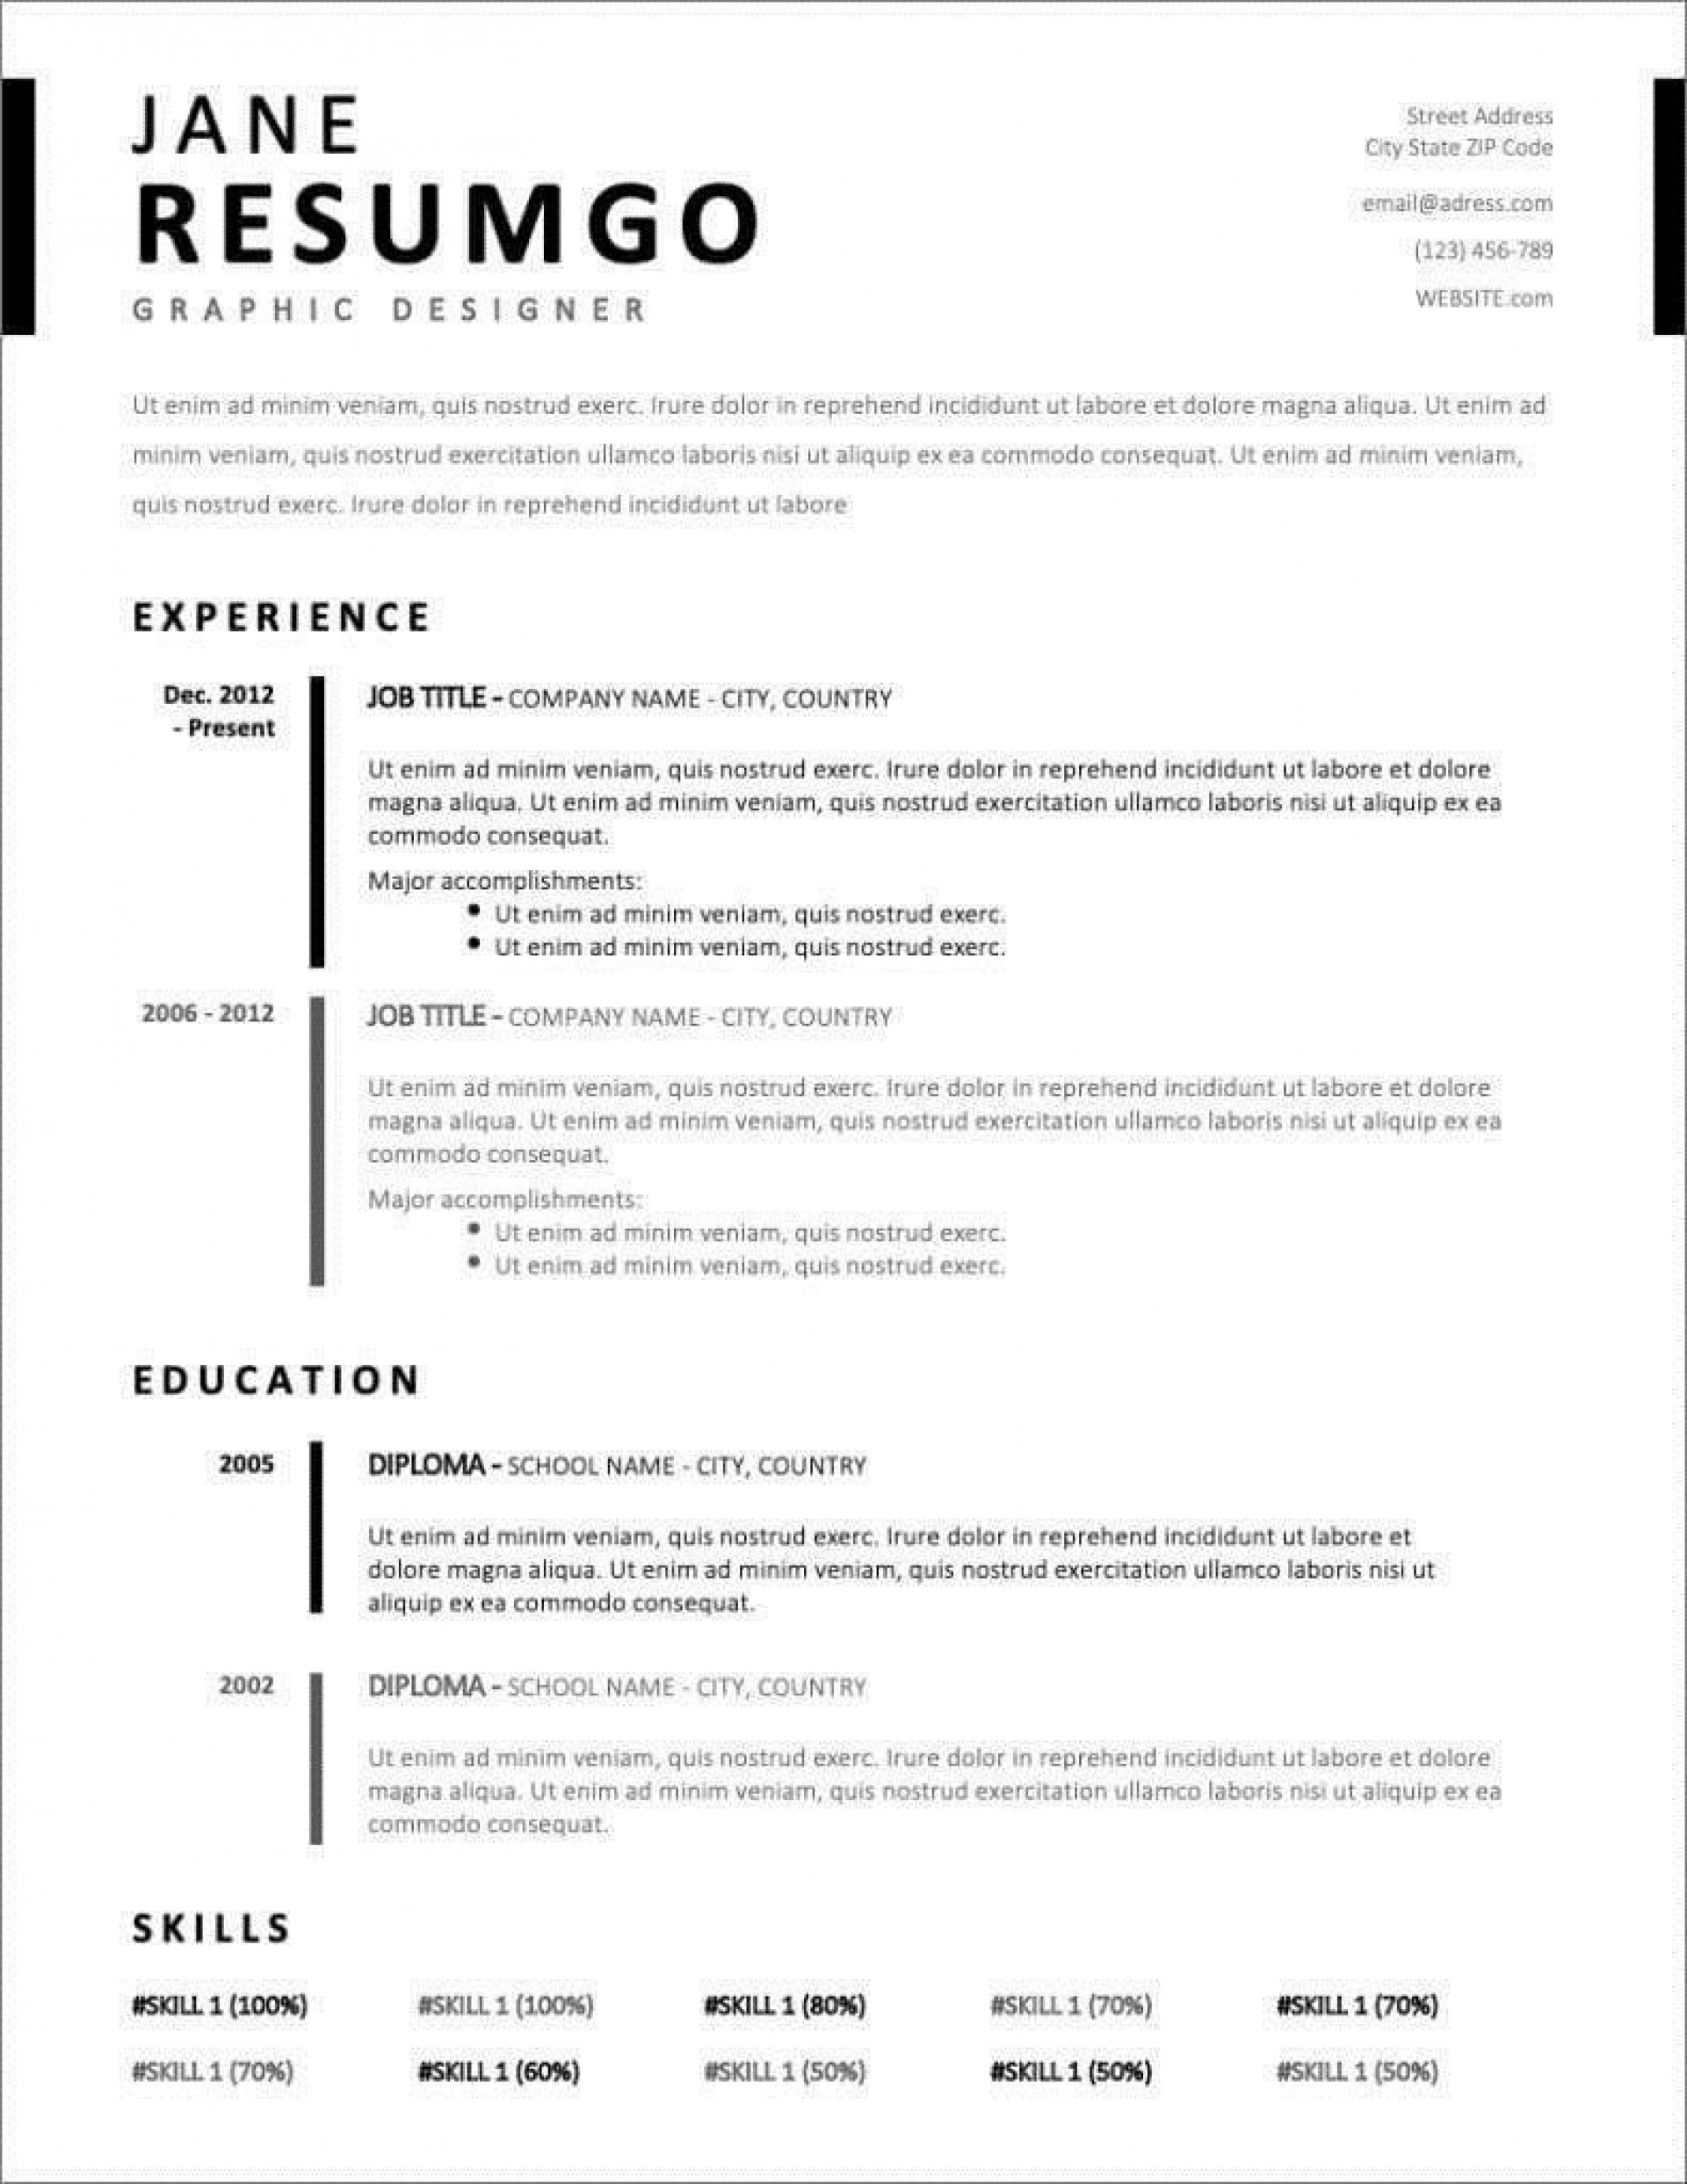 005 Awful Resume Example Pdf Free Download Concept 1920